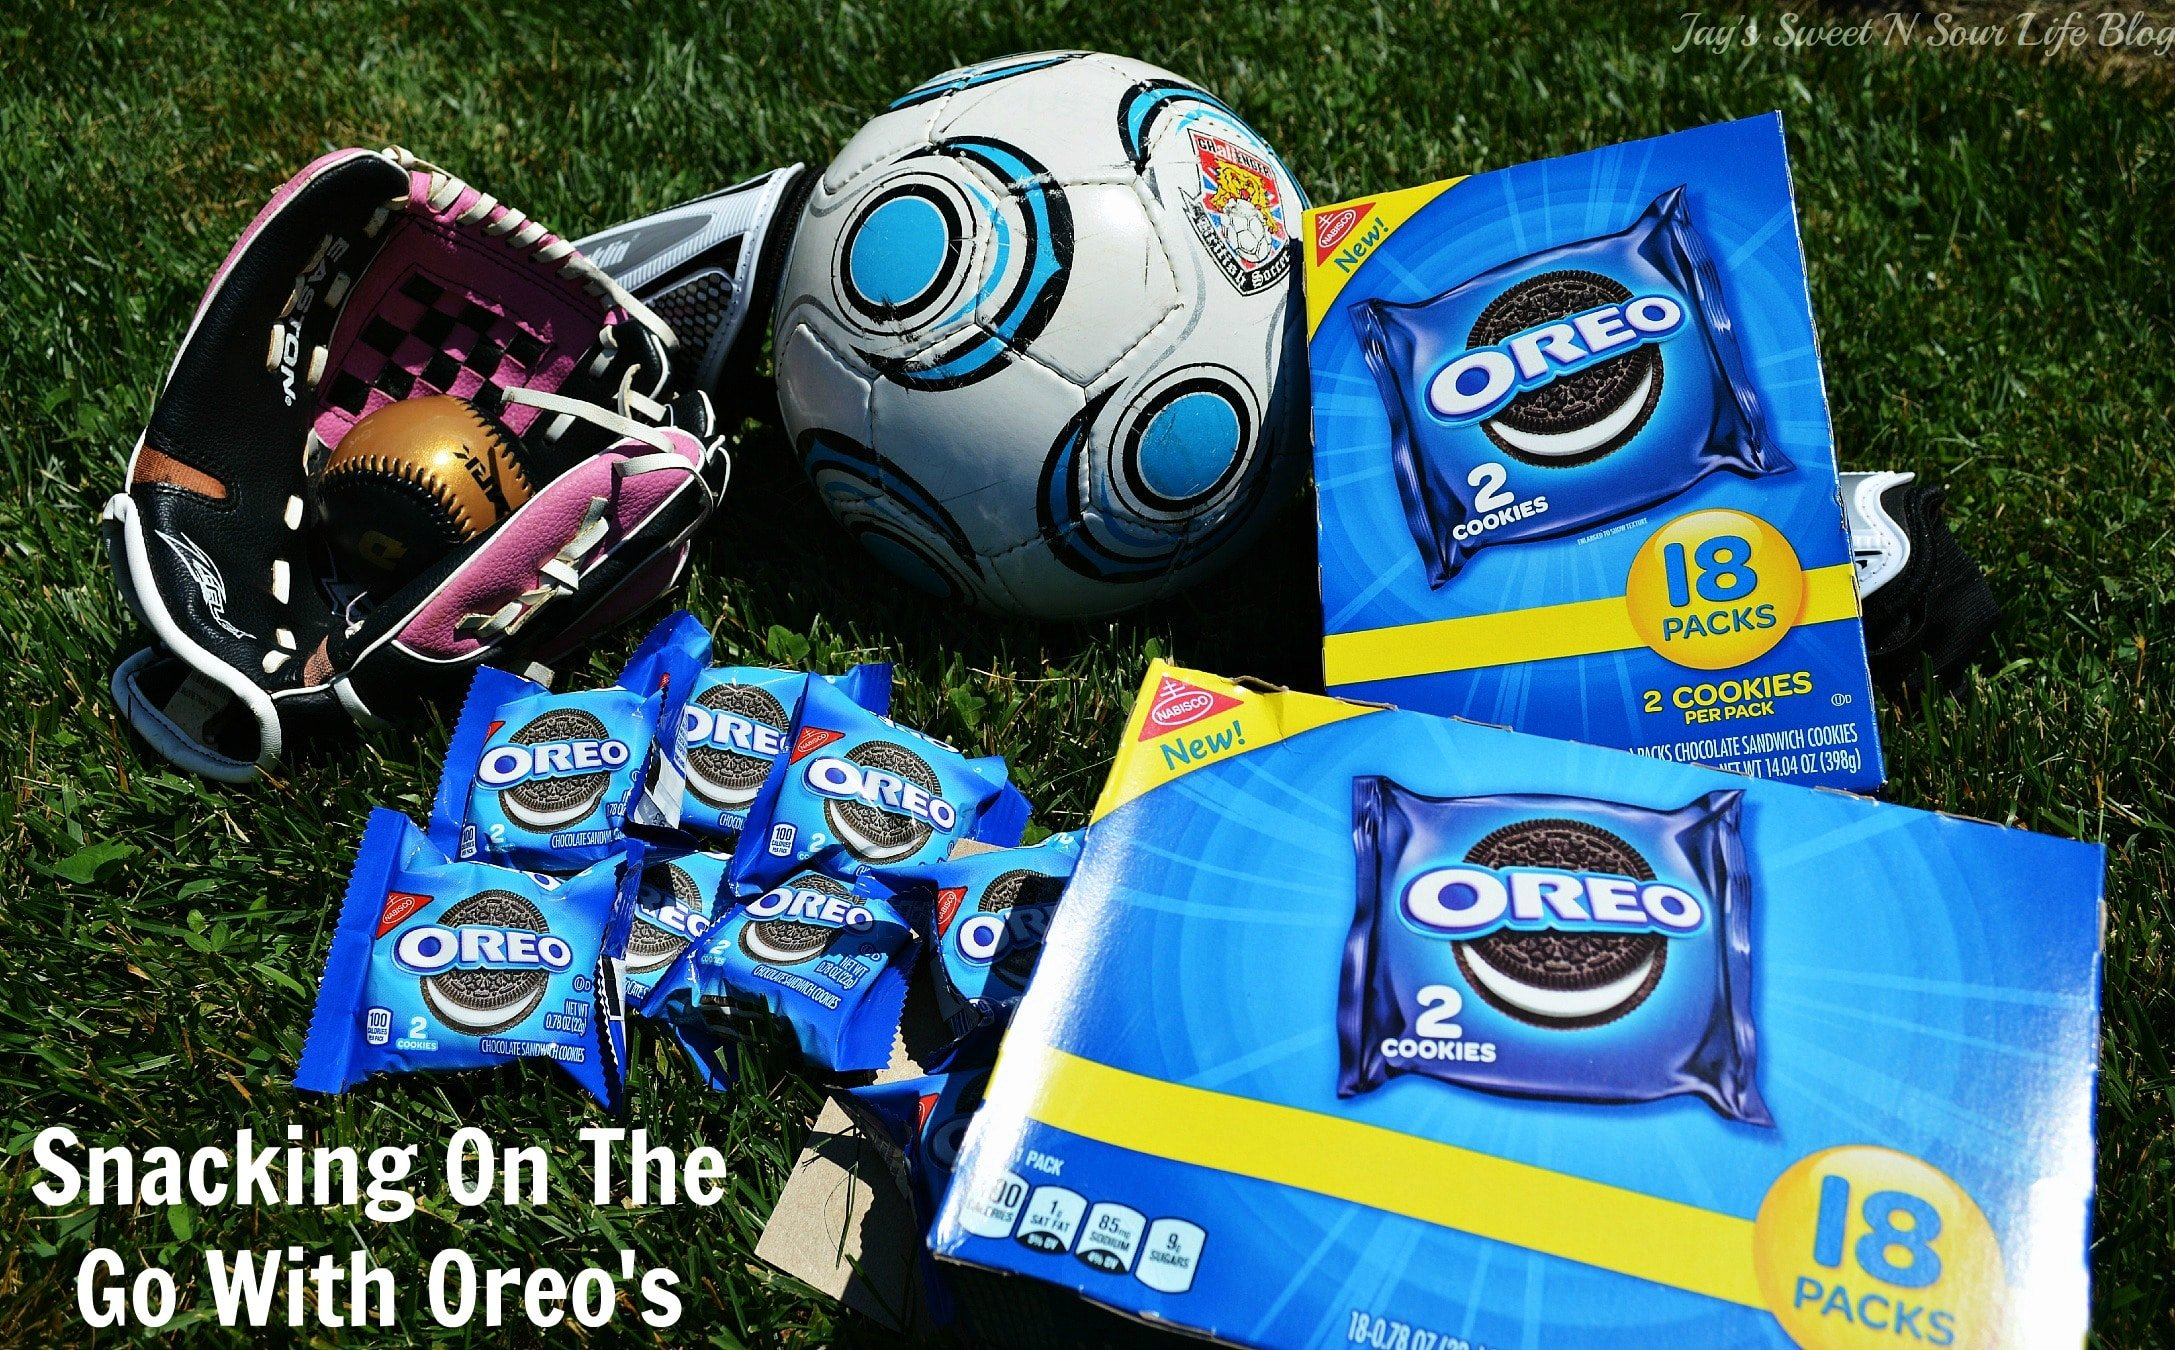 Snacking On The Go With Oreo's